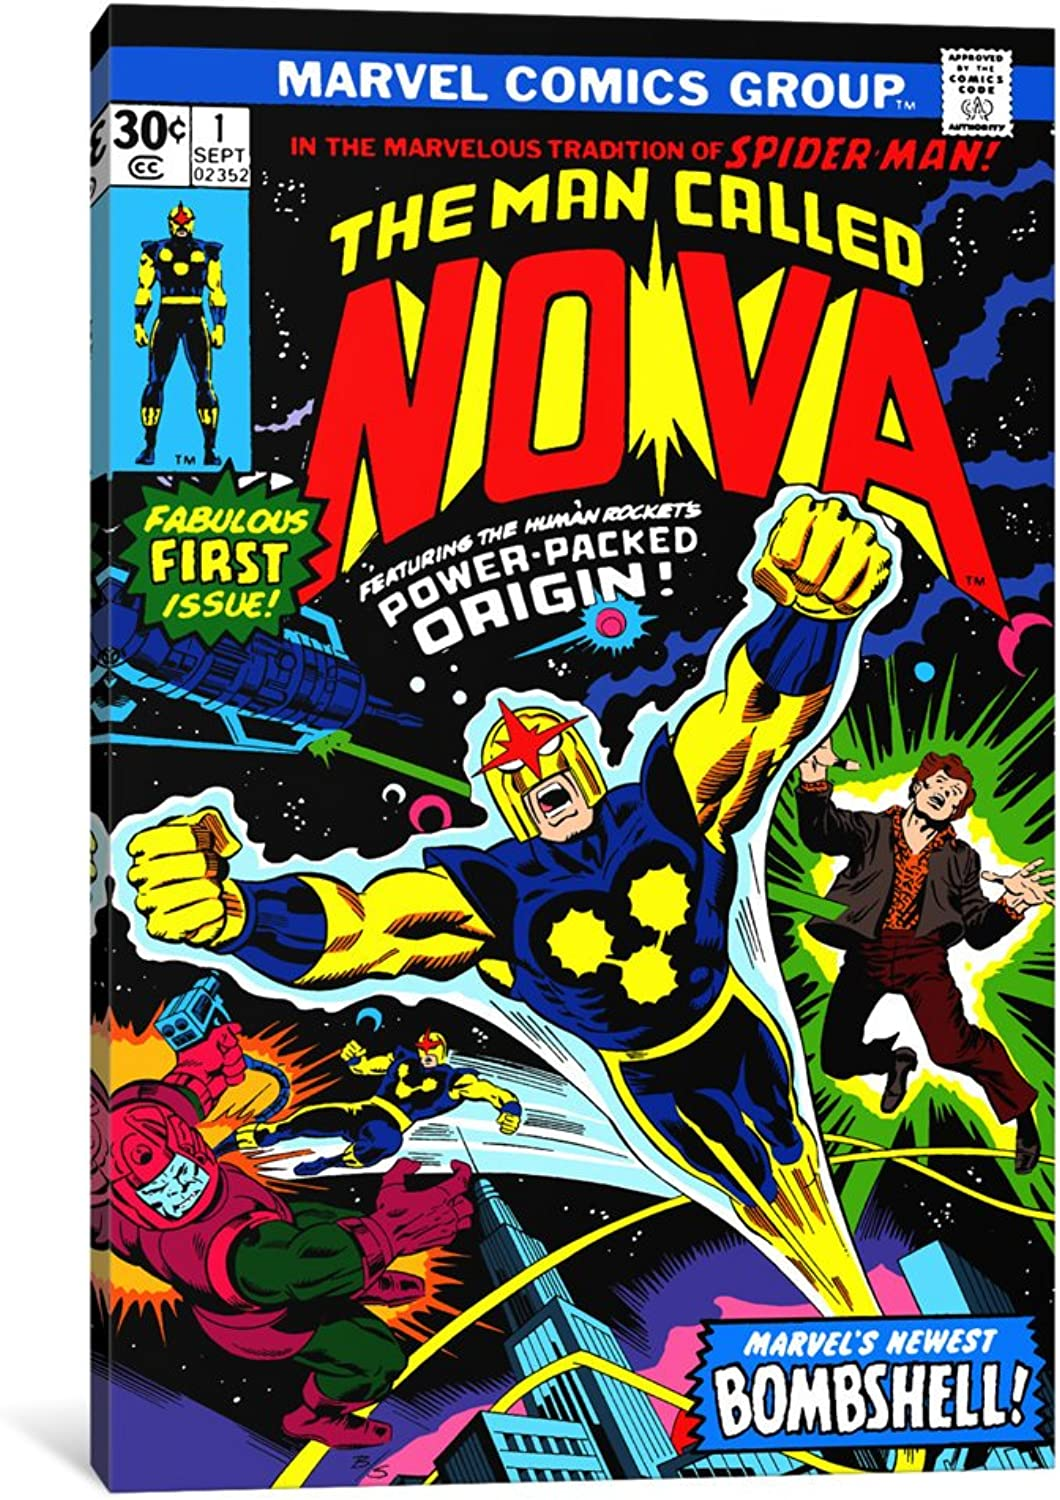 ICanvasART 1-Piece Marvel Comic Book Nova Issue Issue Cover 1 Canvas Print by Marvel Comics, 18  x 12  1.5  Deep